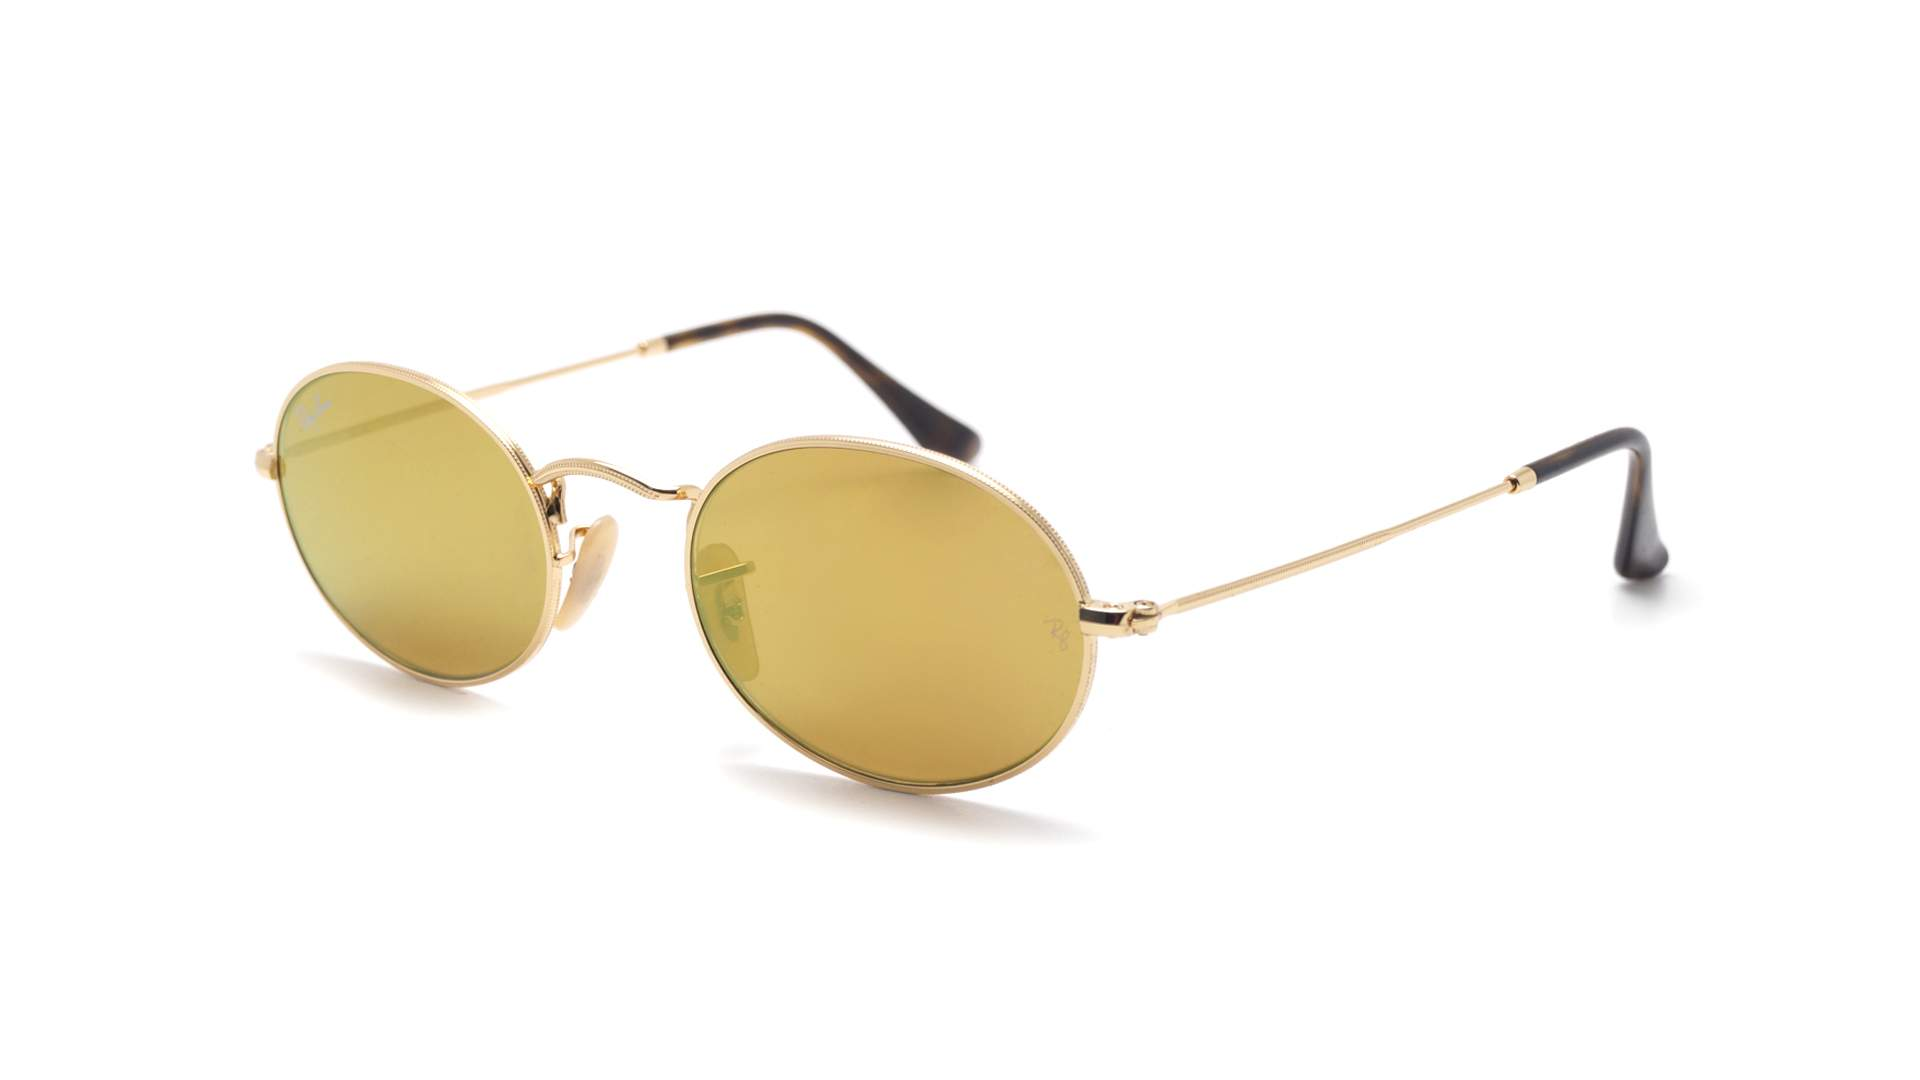 d4692b4bc8 Sunglasses Ray-Ban Oval Flat Lenses Gold RB3547N 001 93 51-21 Medium Mirror